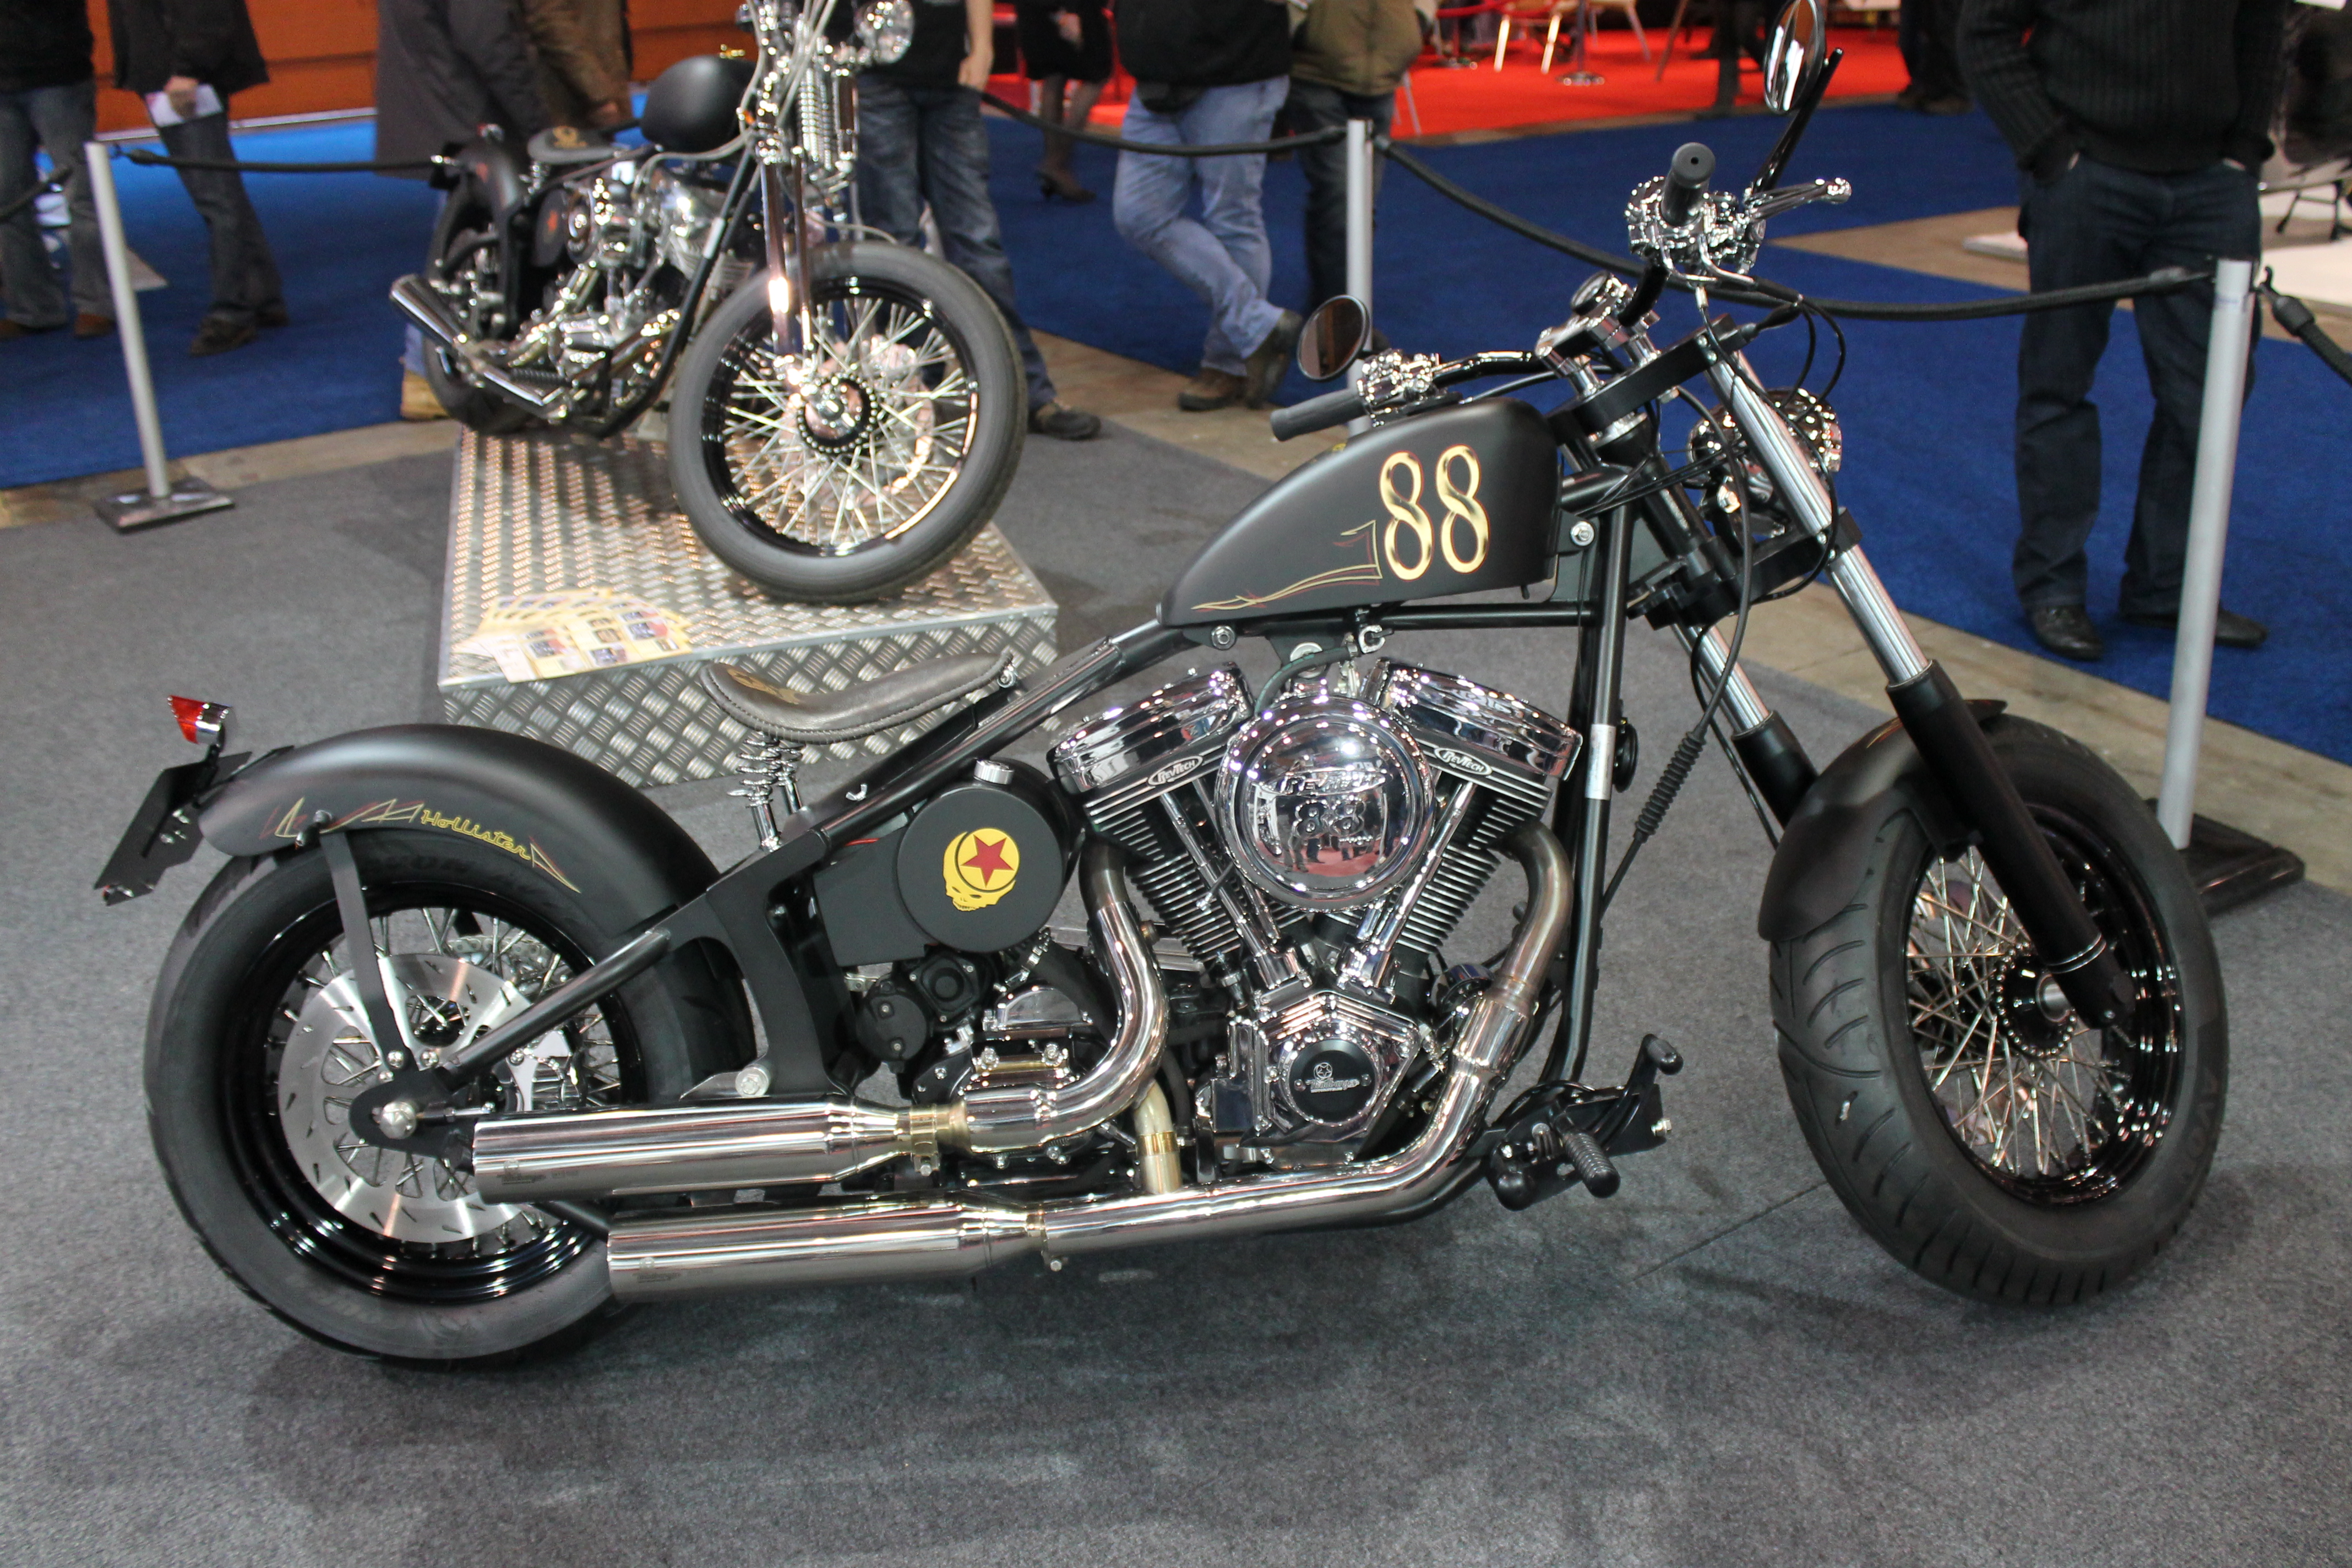 Bike, Carshow, Motorcycle, Ride, Show, HQ Photo